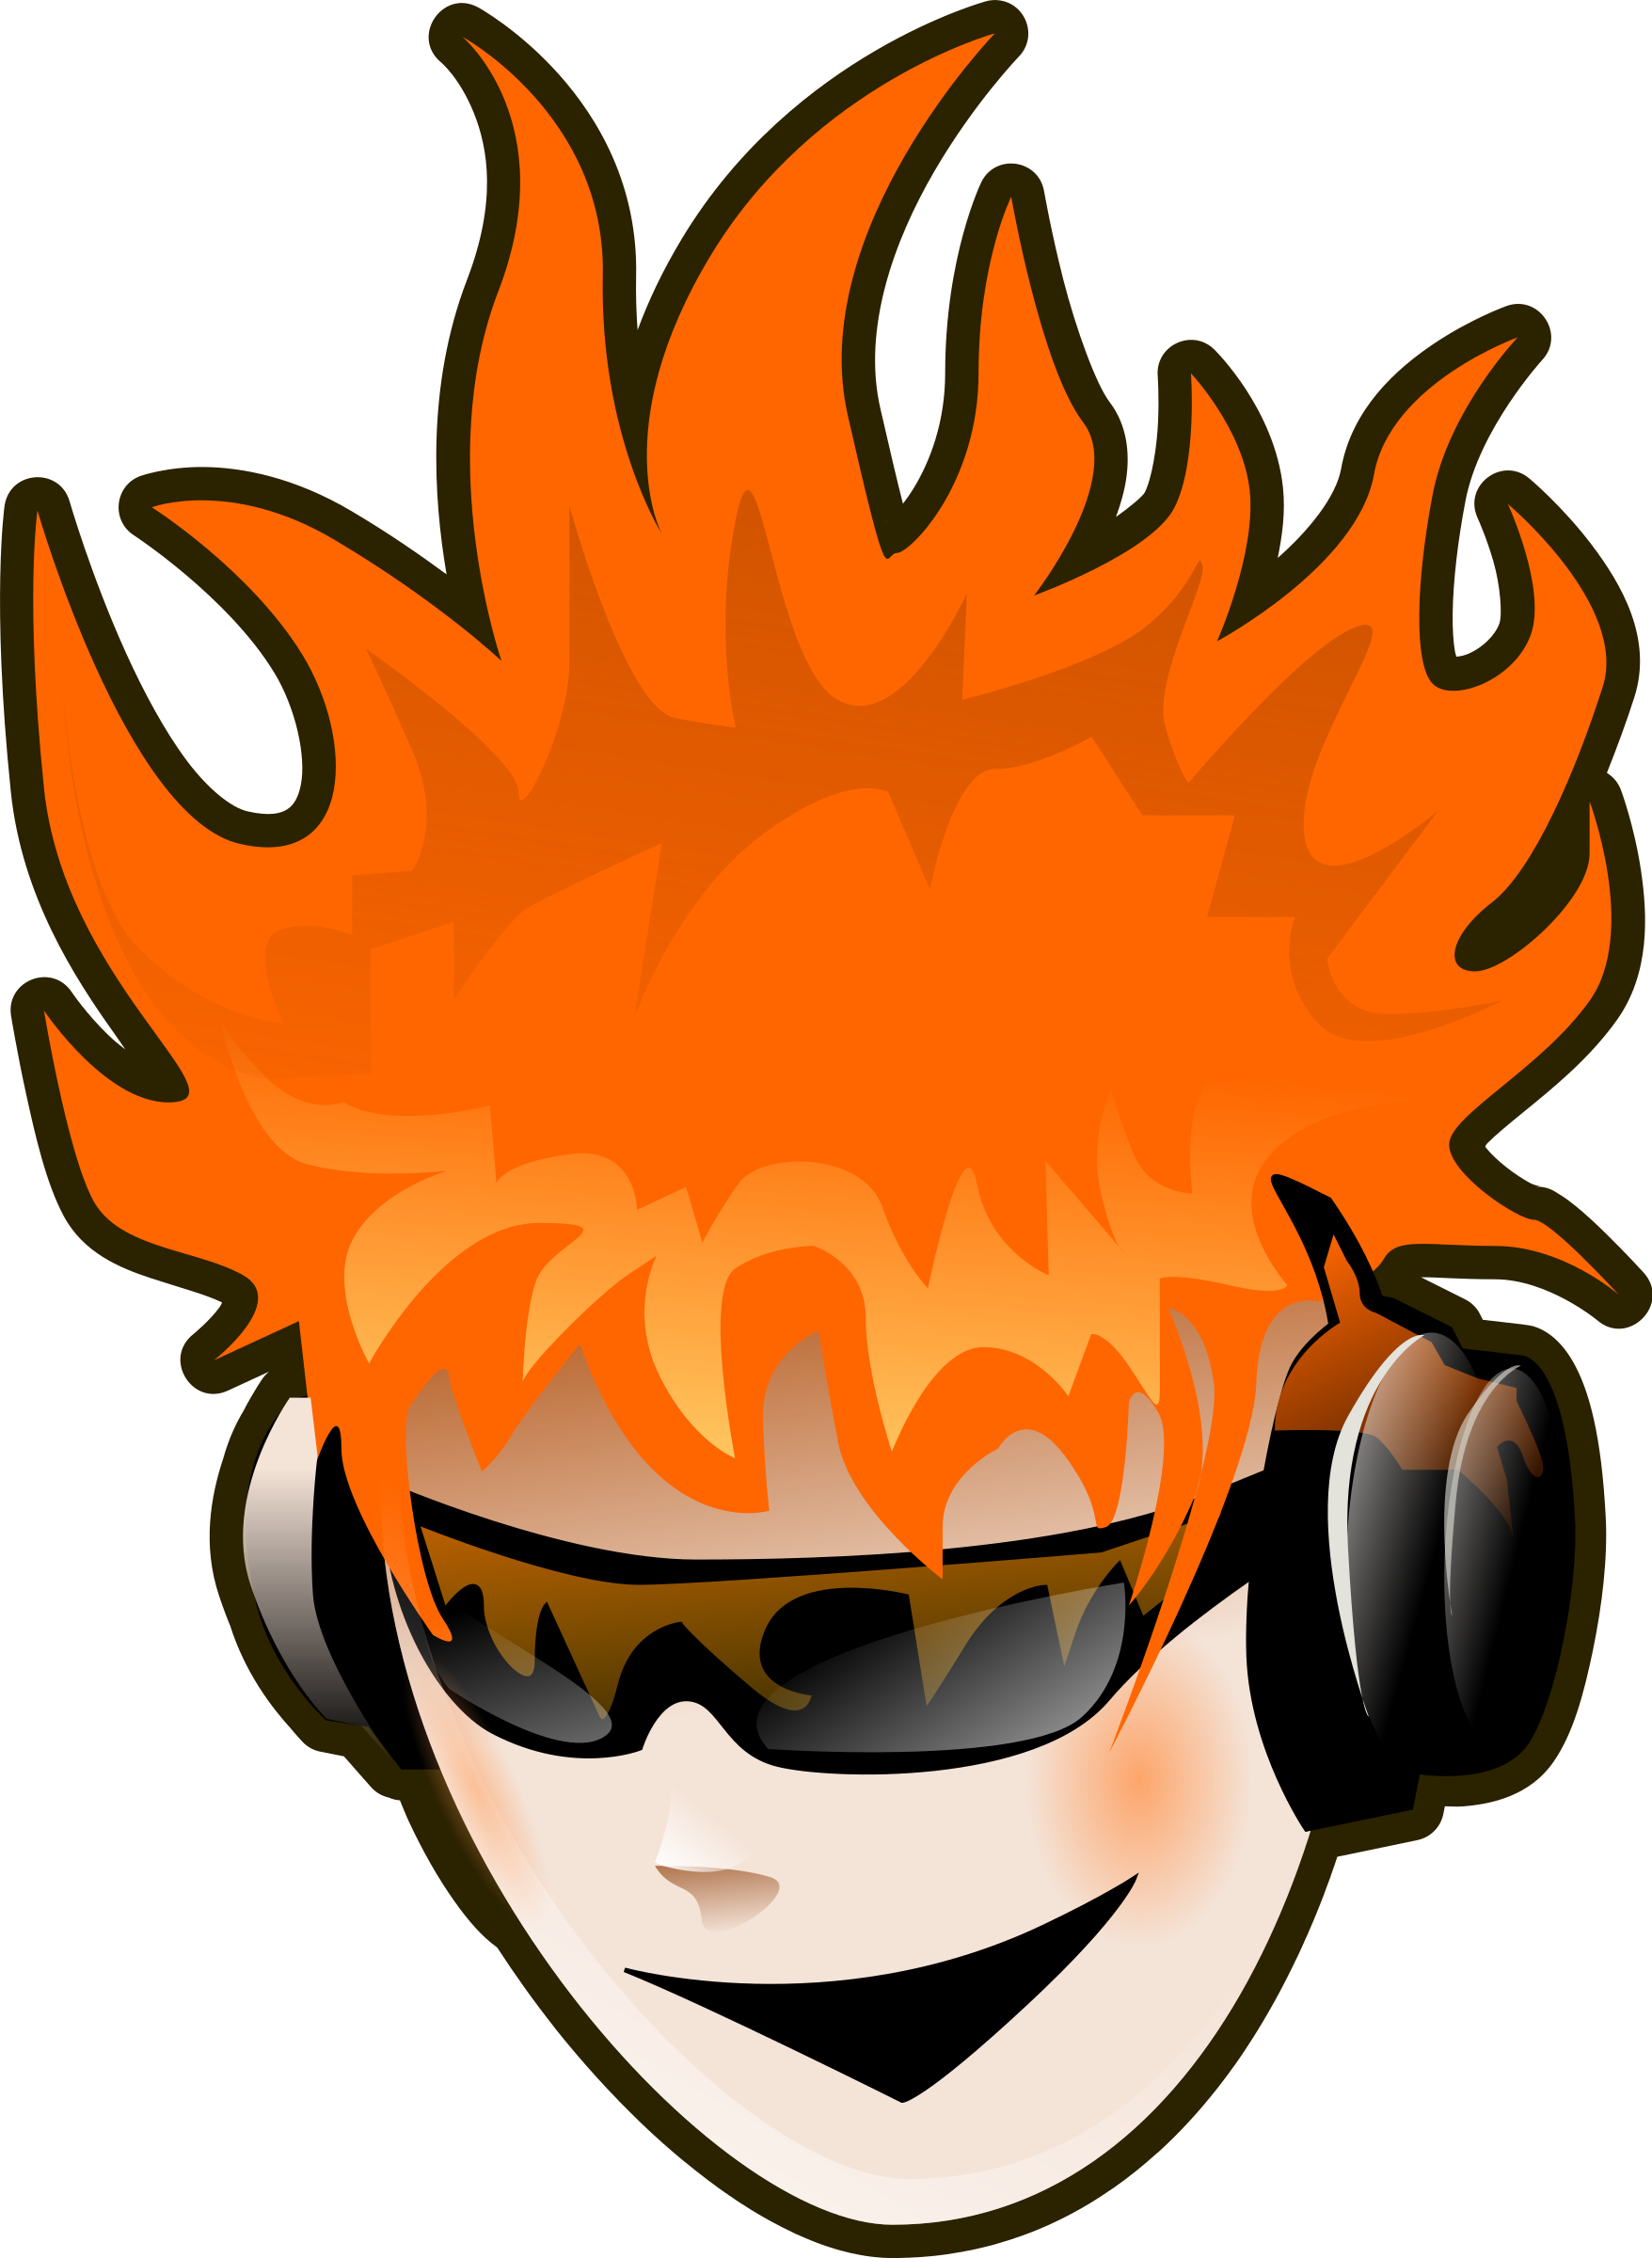 Music big image png. Headphone clipart animated